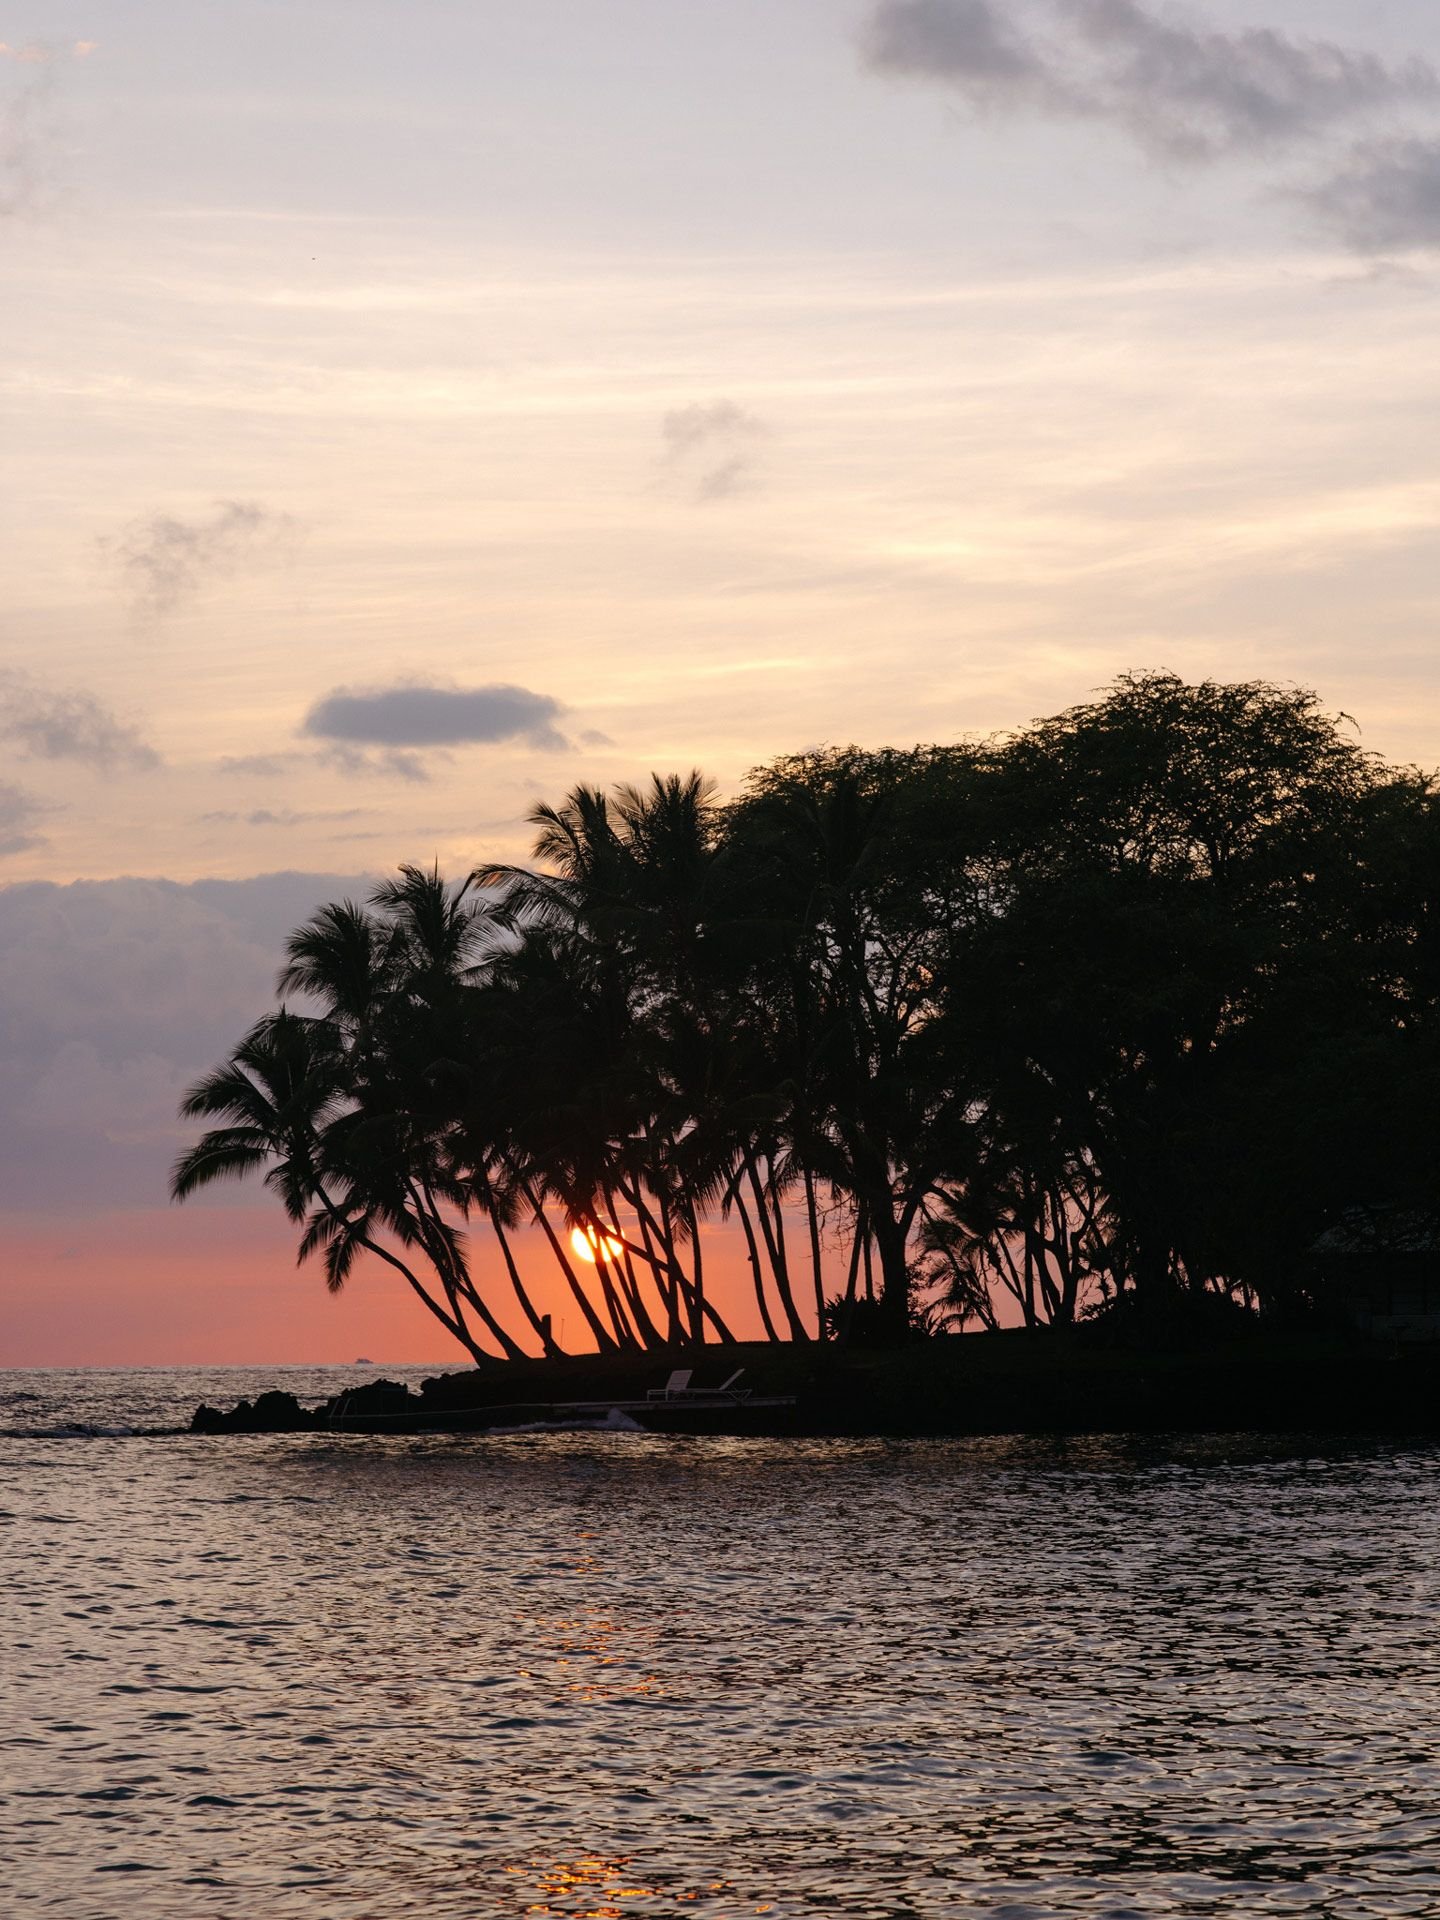 sunset behind palm trees by Alexi Hobbs in Hawaii for enRoute